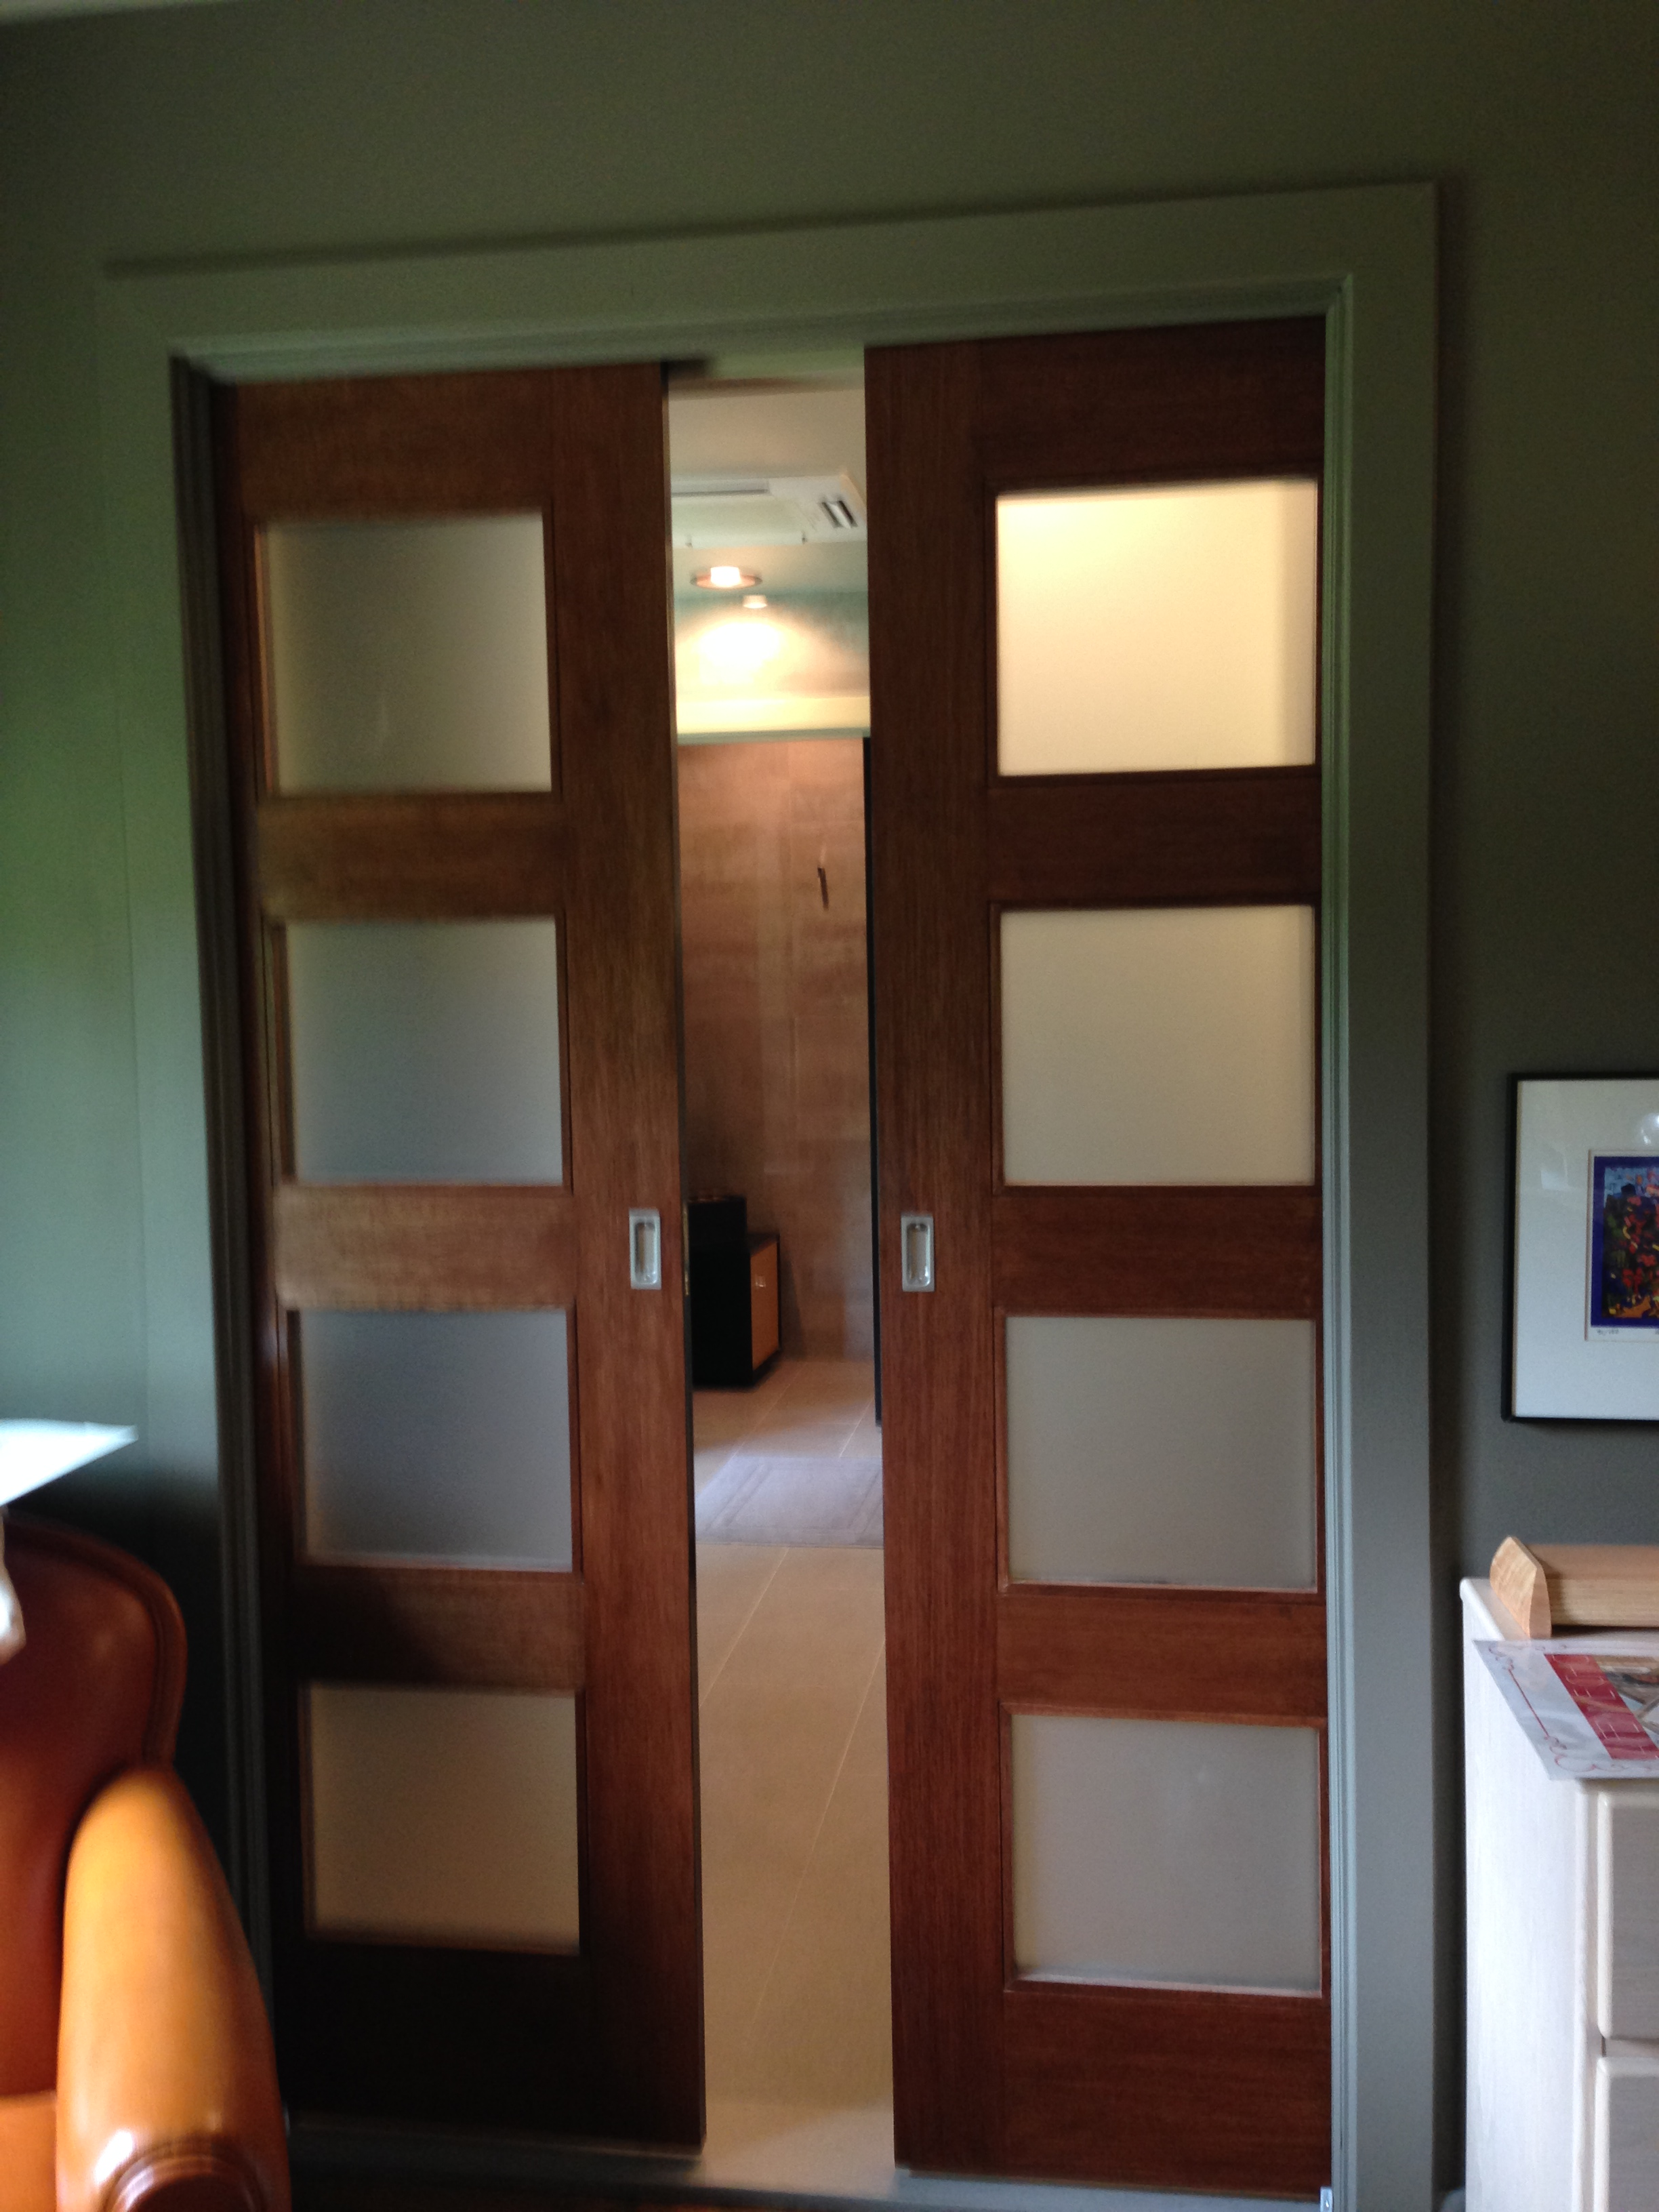 AFTER:  The entry has been widened to 4', and two pocket doors have been installed in a new 2x6 partition (the old 2x4 wall was removed).